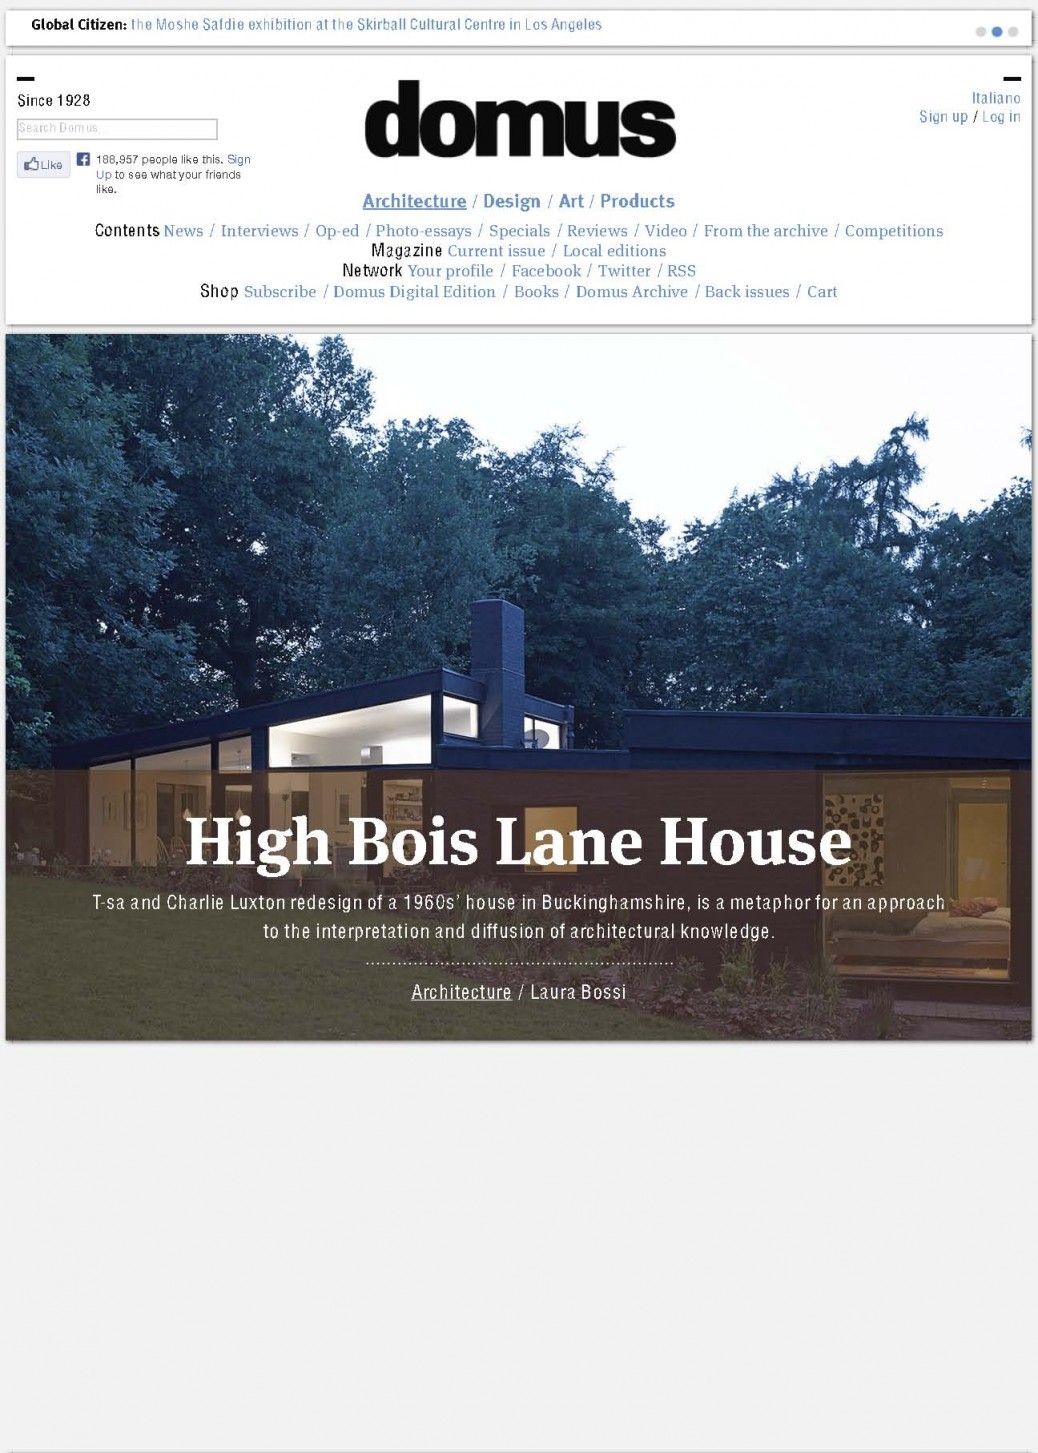 Domus_High Bois Lane1_1